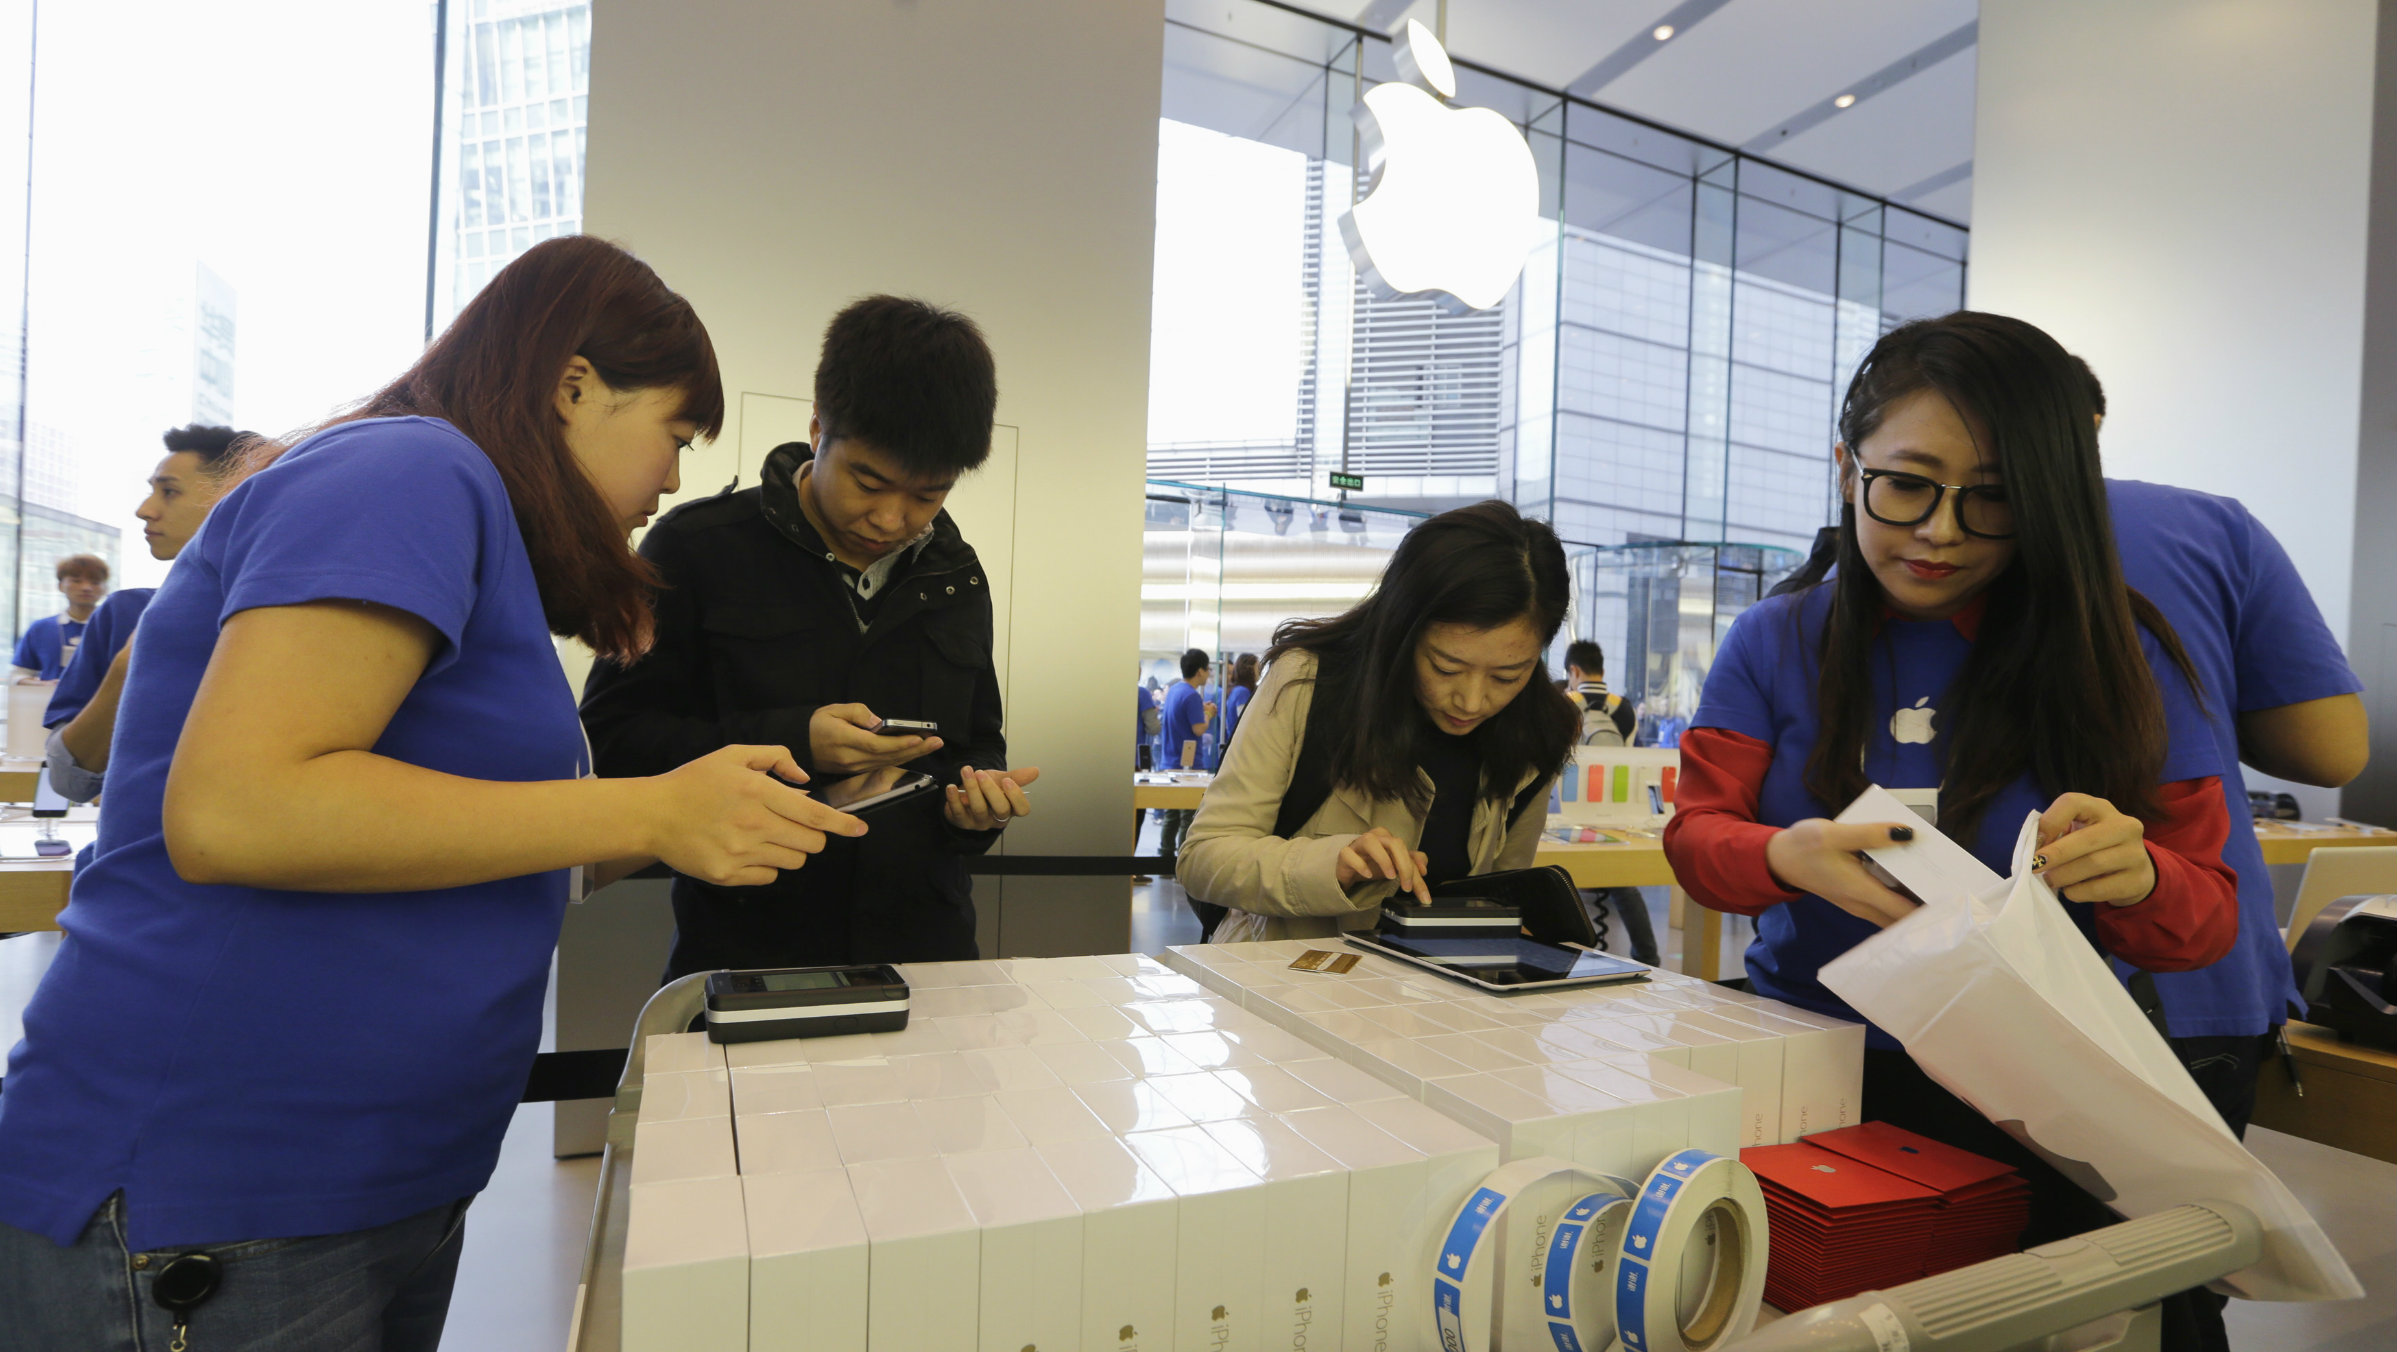 China may be hacking every iPhone user in the country — Quartz